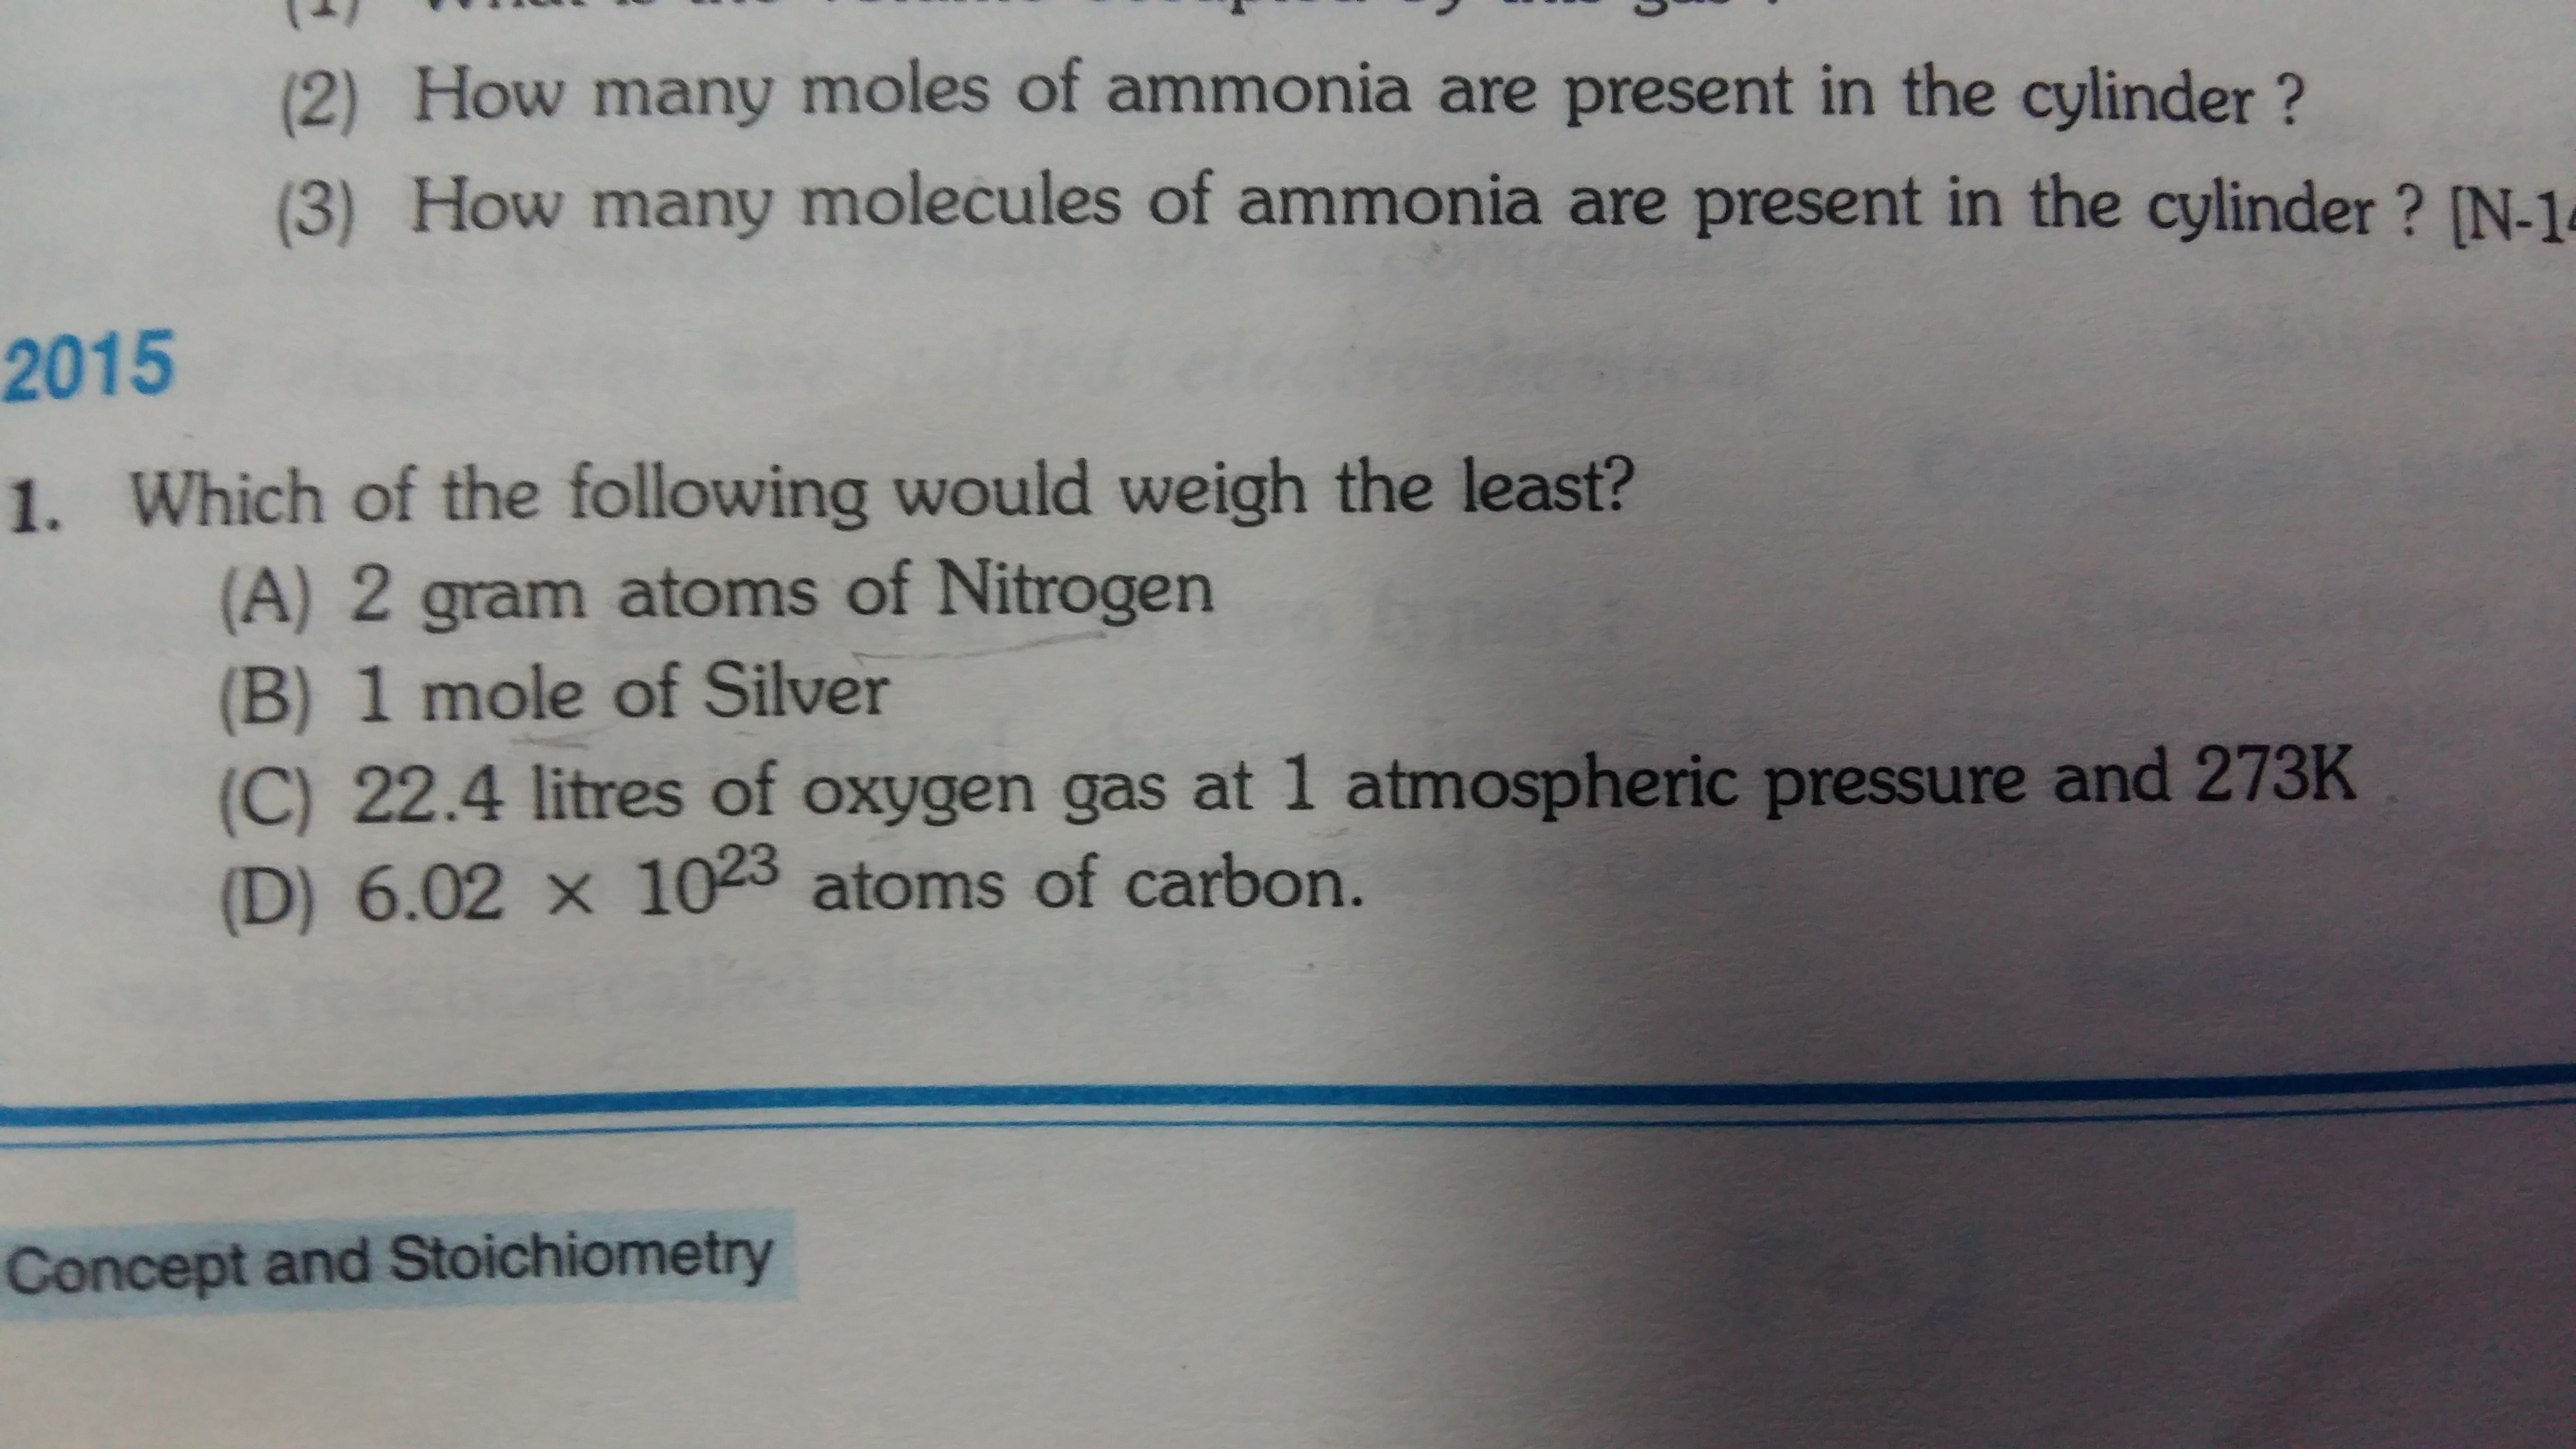 How To Calculate Percentage Purity Of An Impure Sample